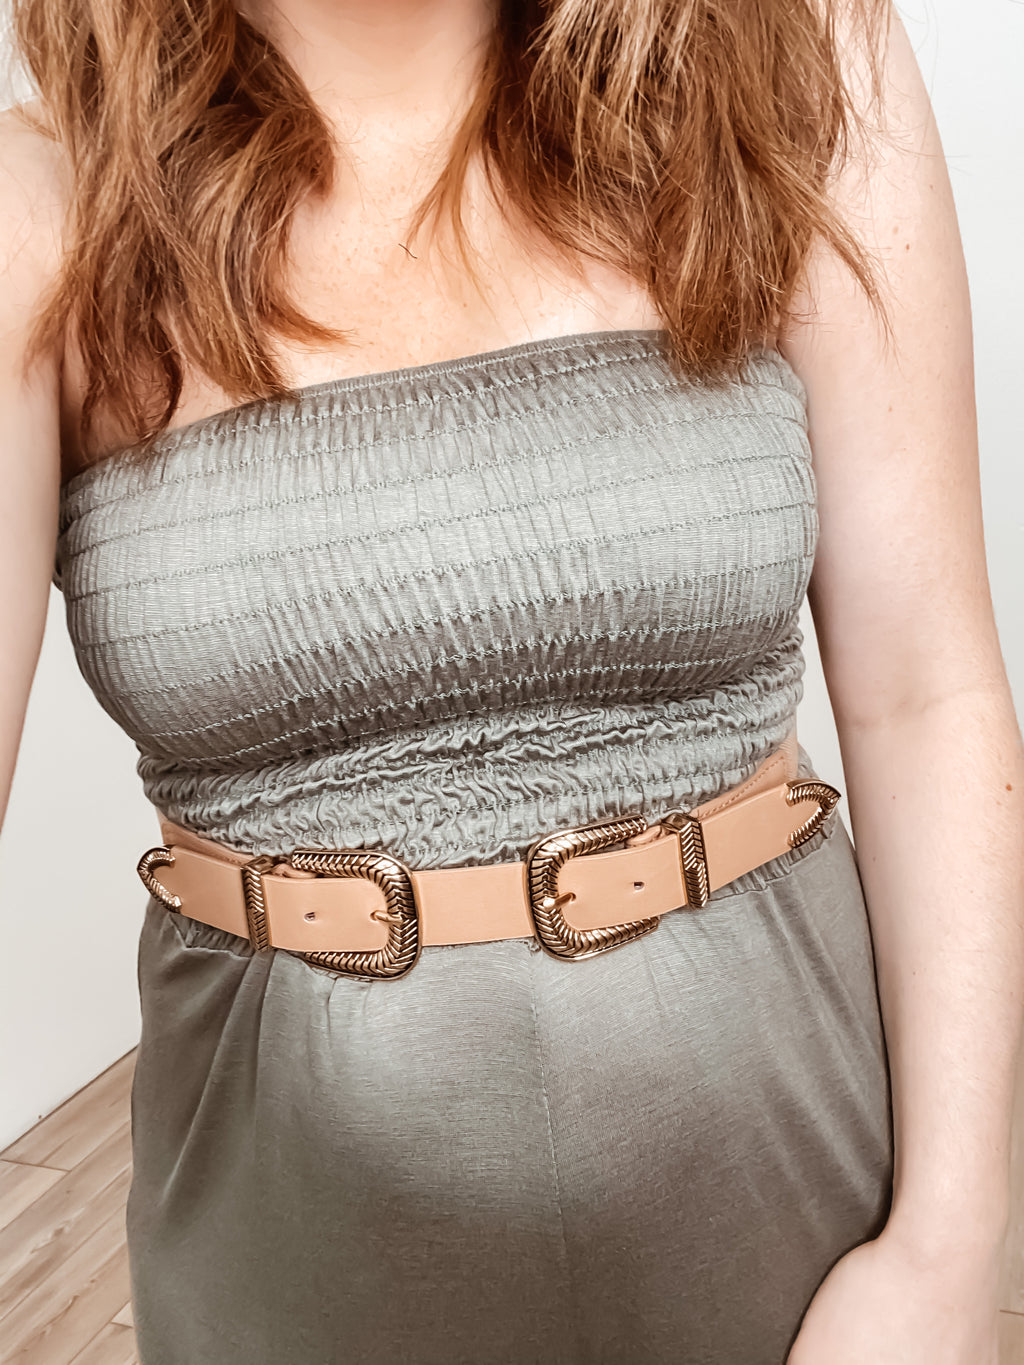 Double Buckle Stretch Belt: Taupe